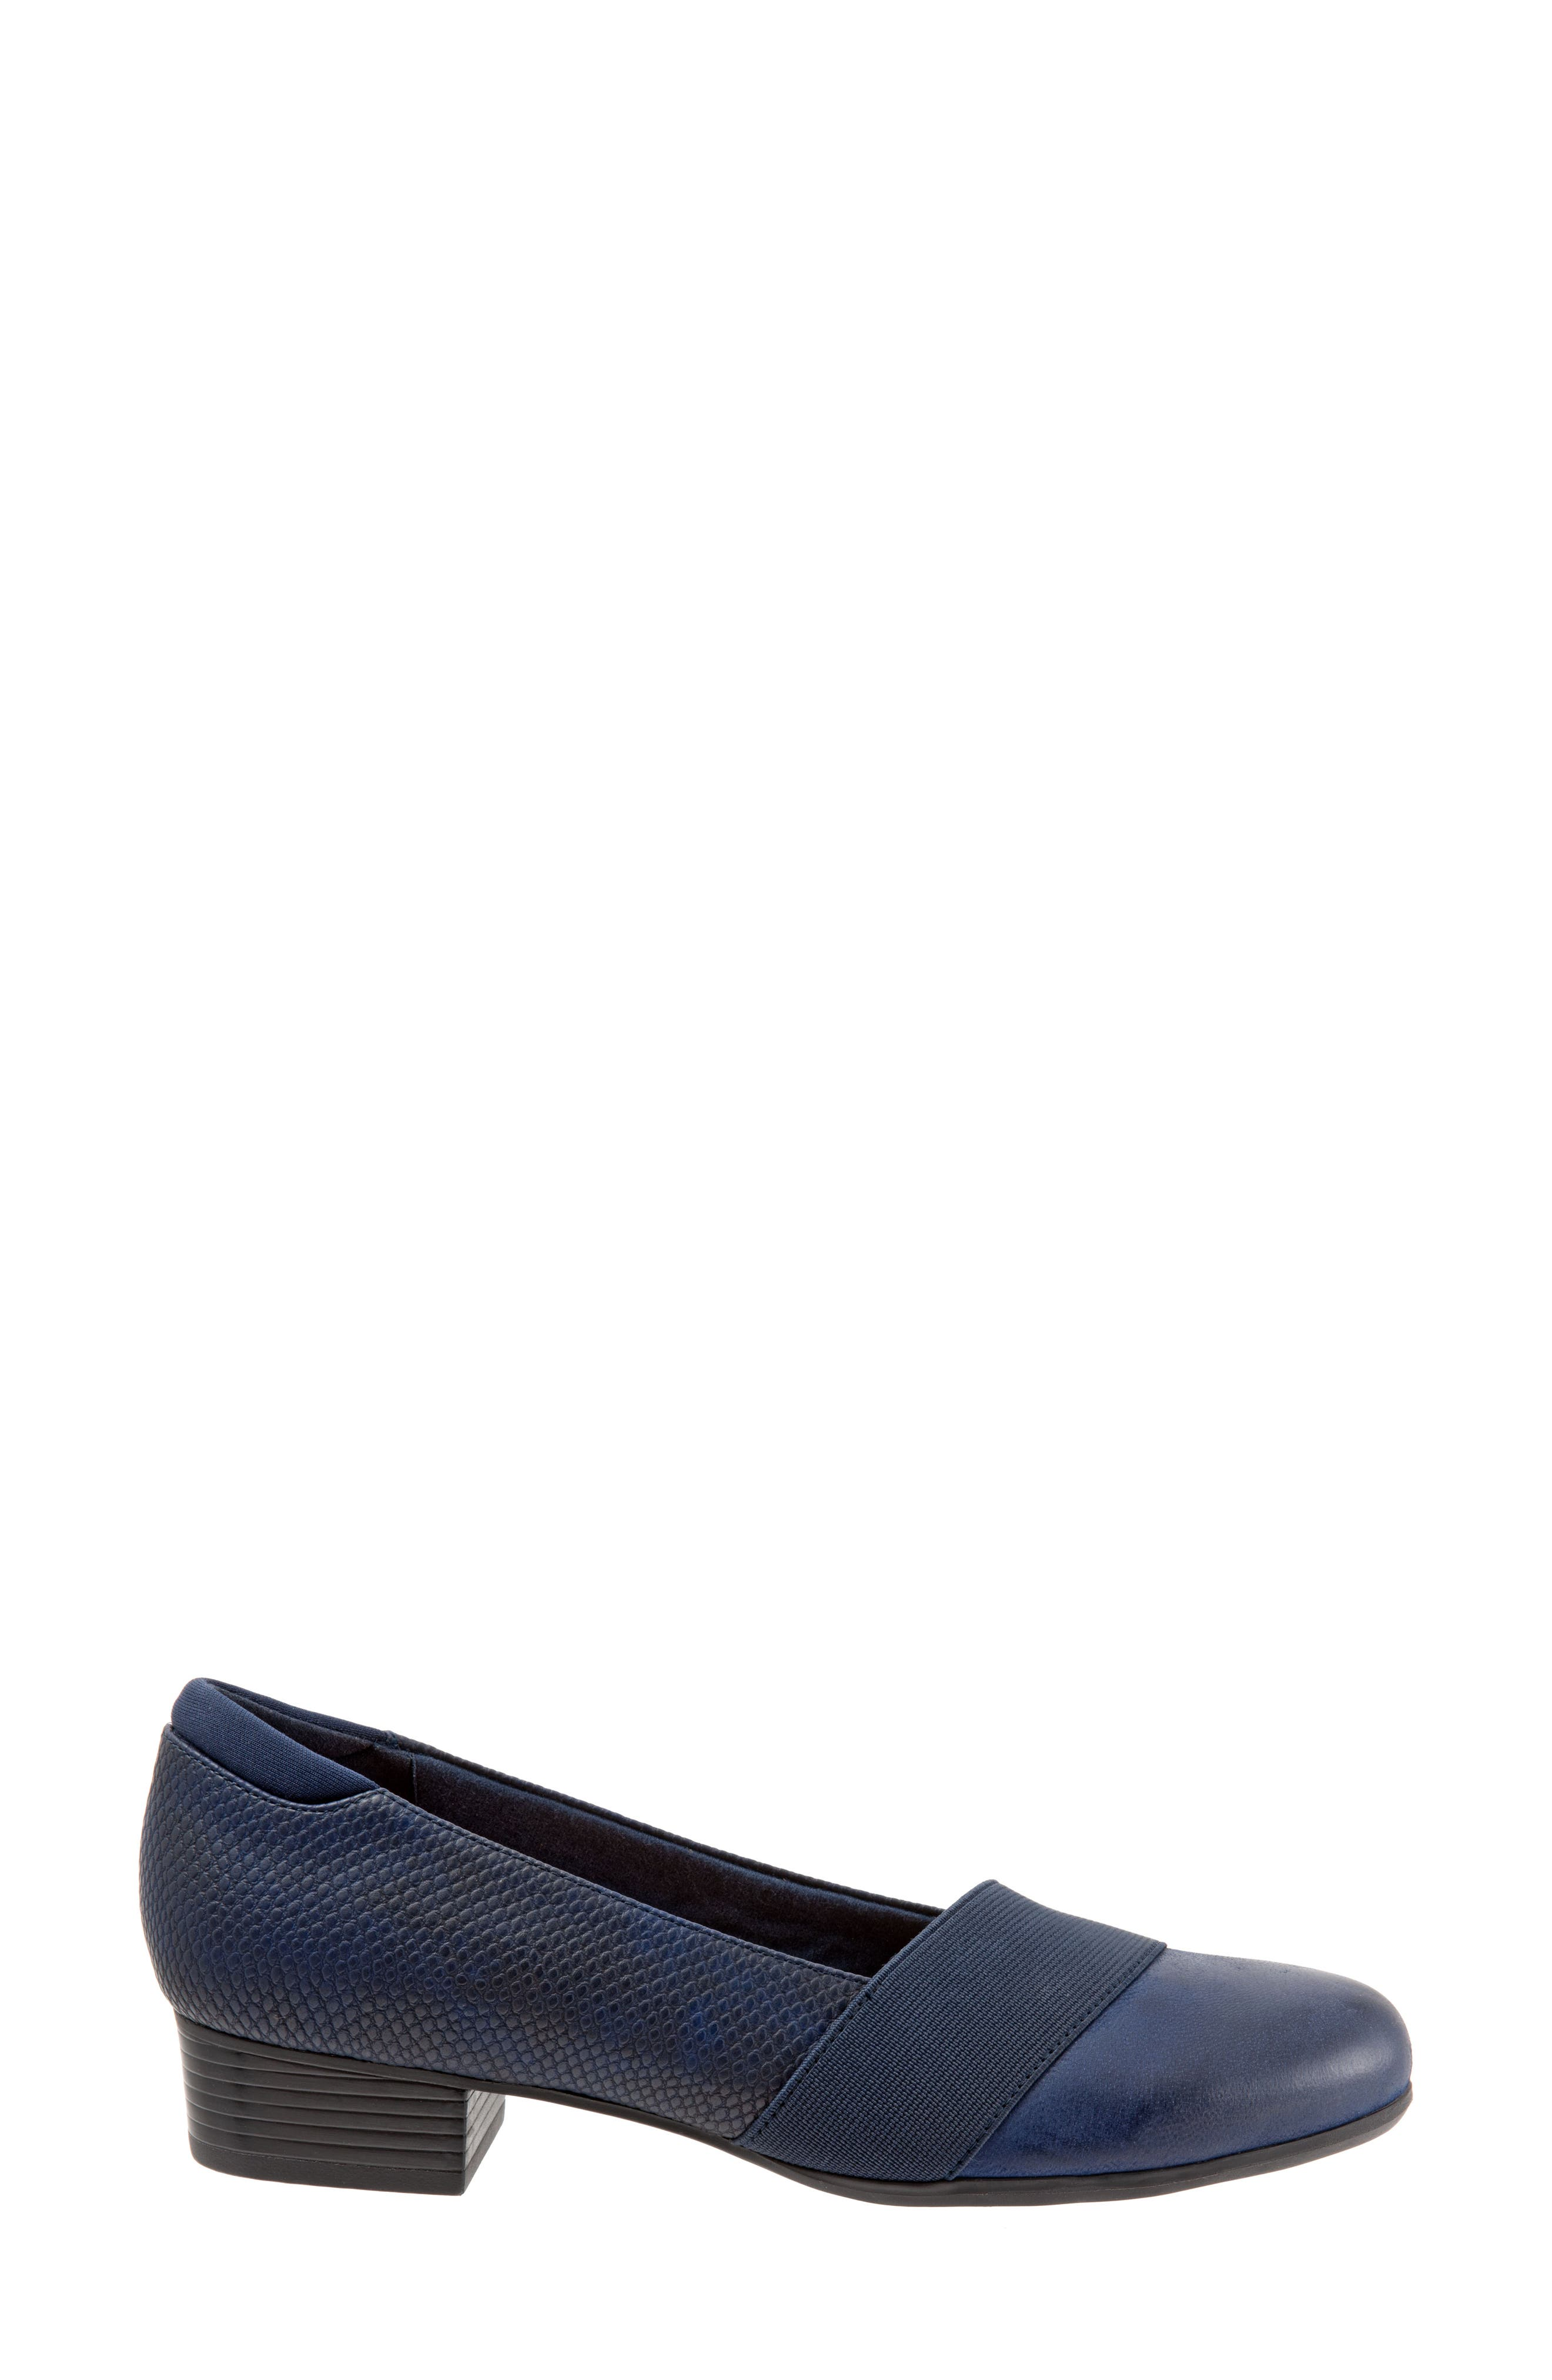 TROTTERS,                             Melinda Loafer,                             Alternate thumbnail 3, color,                             NAVY LEATHER